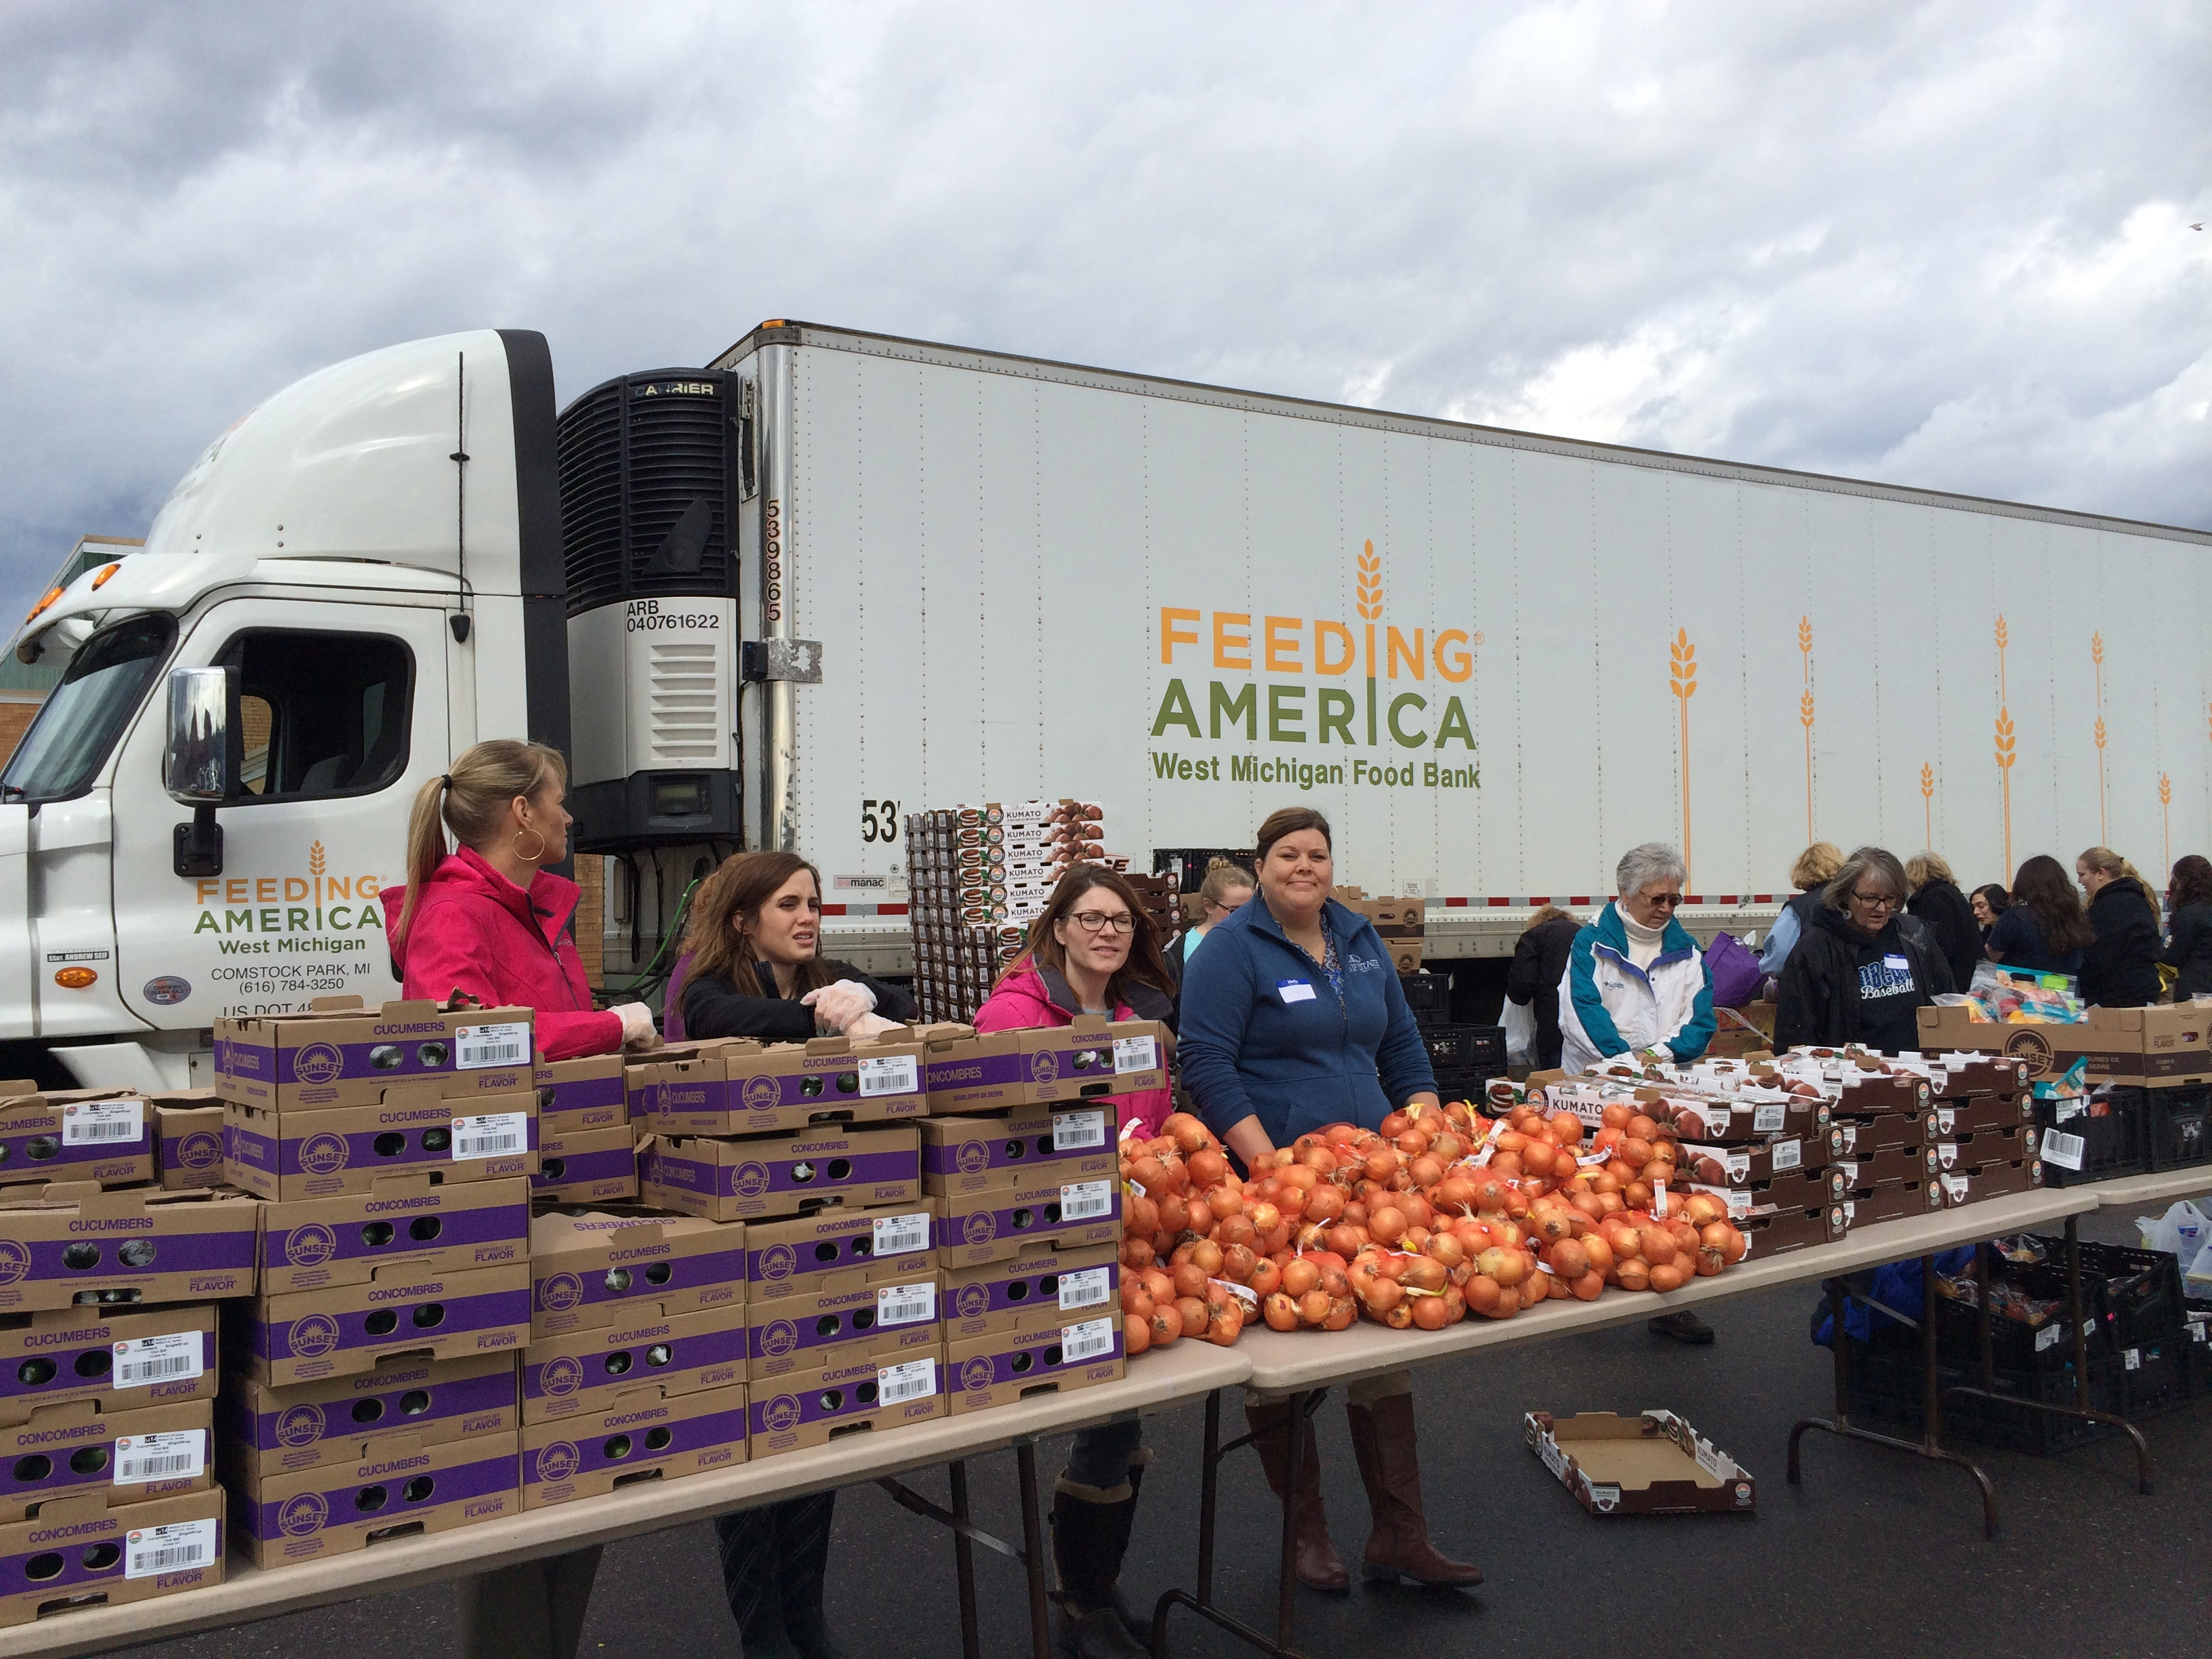 Mobile Food Pantry volunteers in front of truck with food